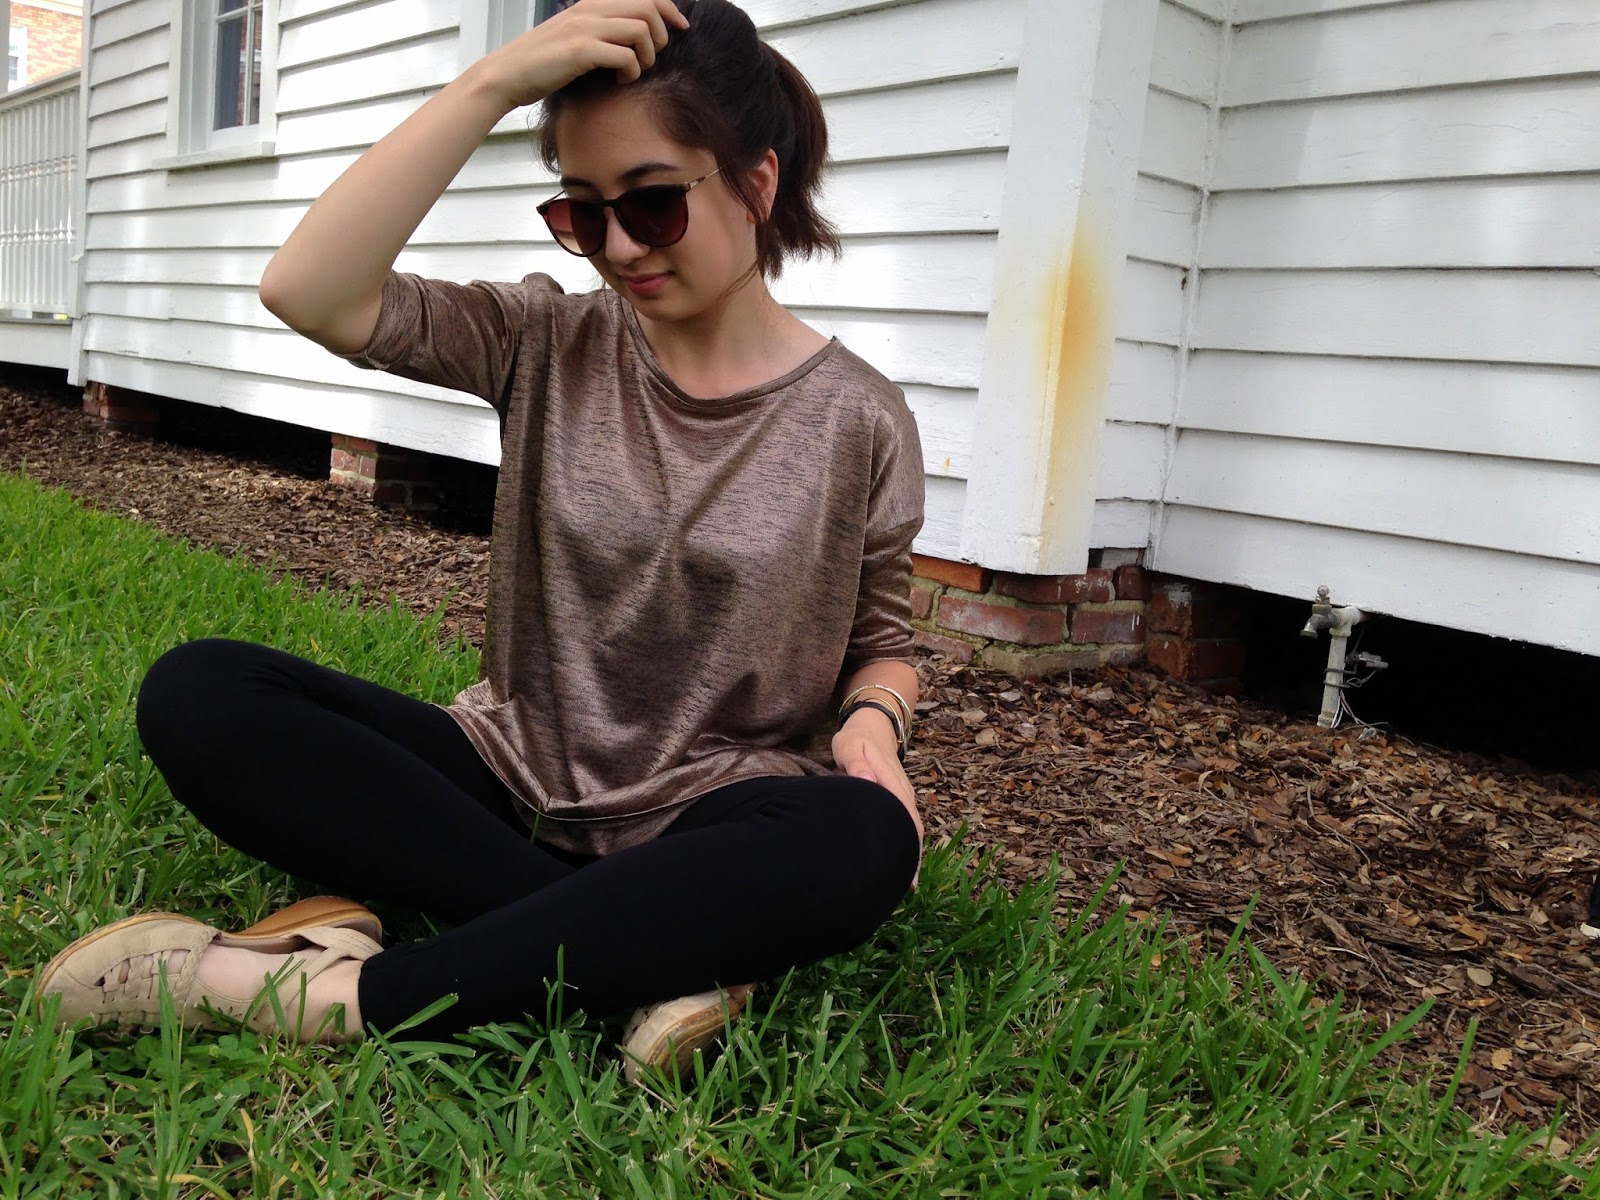 Fall Neutral Leggings Outfit Boyfriend Pizza Surprise, tumblr girl leggings outfit, tumblr h and m outfit, shiny brown tunic outfit, how to wear, brown sunglasses, target, forever 21 black leggings outfit, style, picnic, bestie